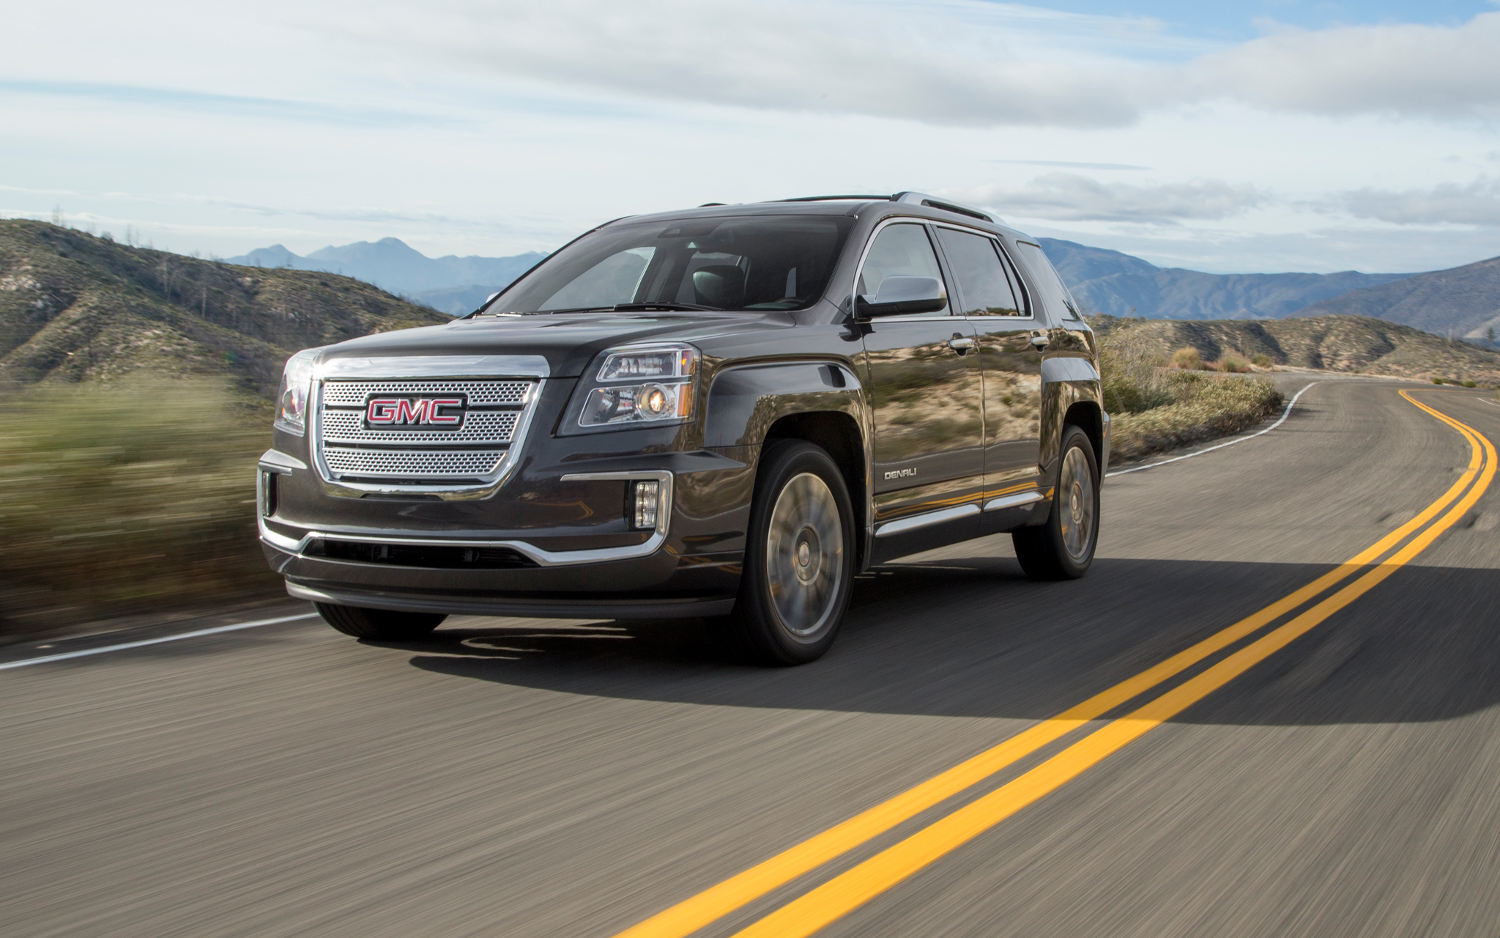 Comparison Gmc Terrain Denali 2017 Vs Gmc Terrain